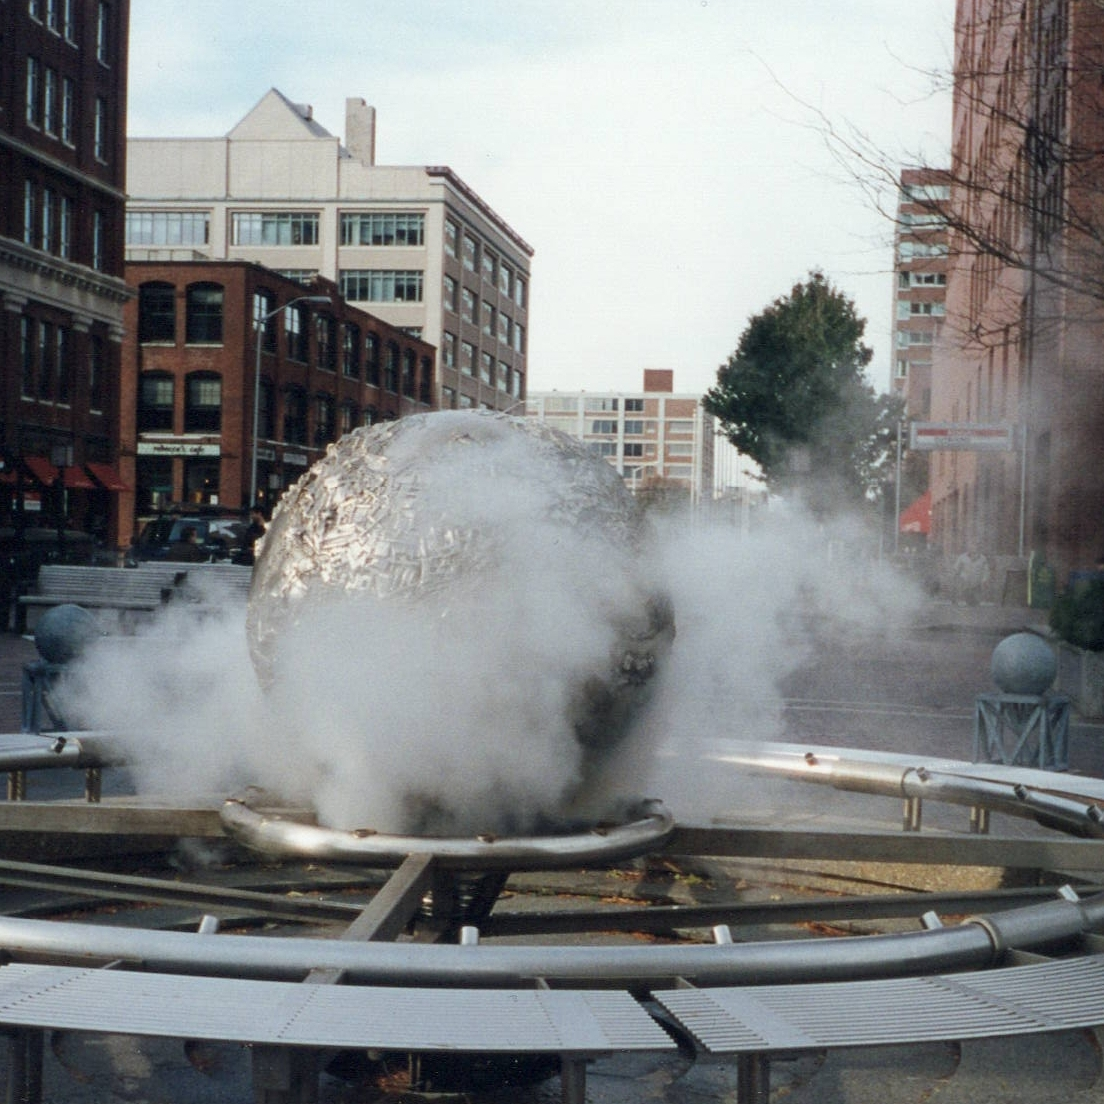 steam coming out of sphere sculpture